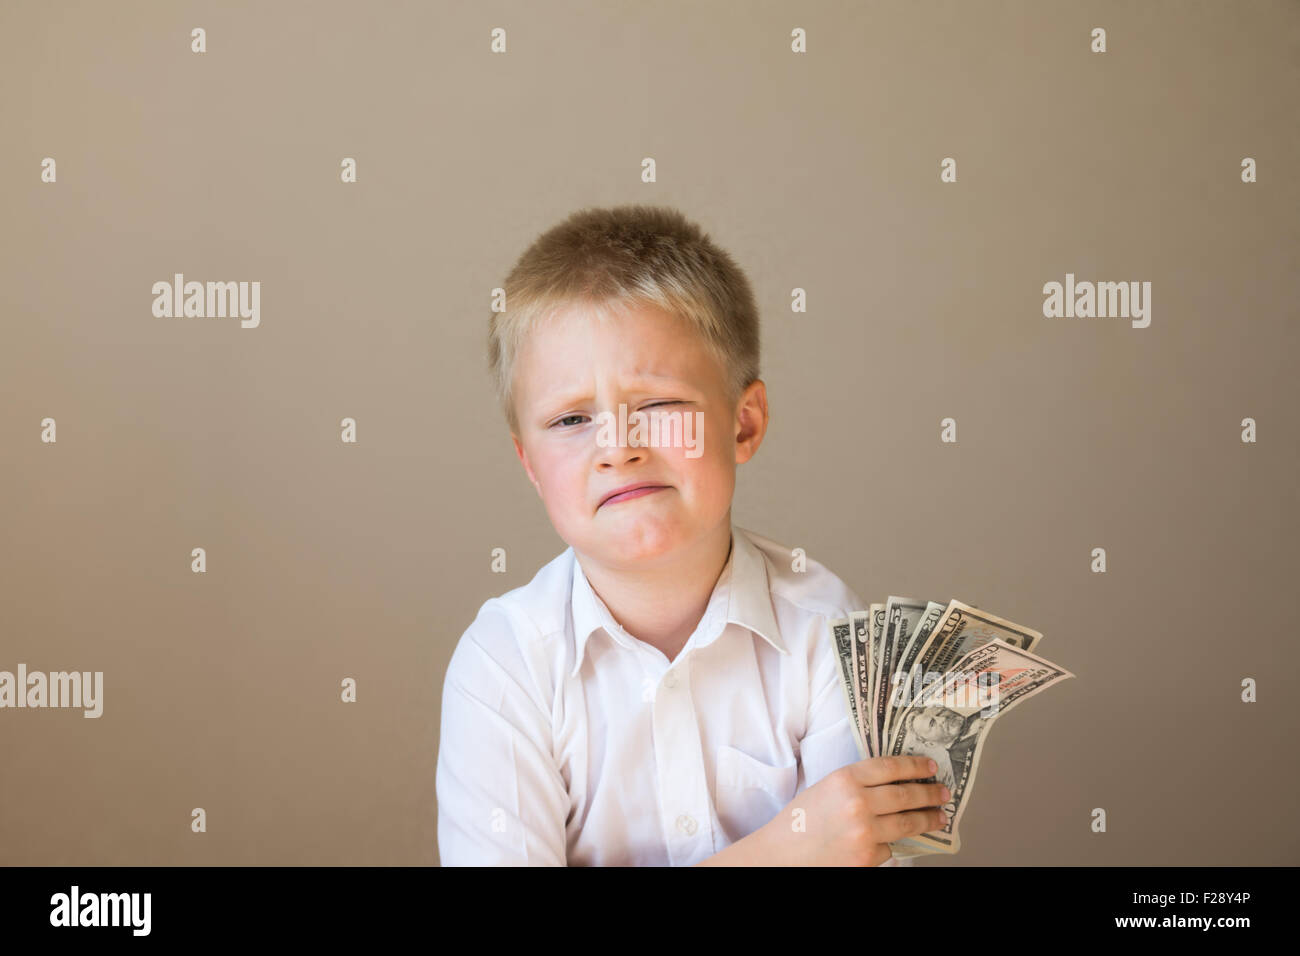 Happy smiling funny child with money (dollars) in hand on gray background - Stock Image